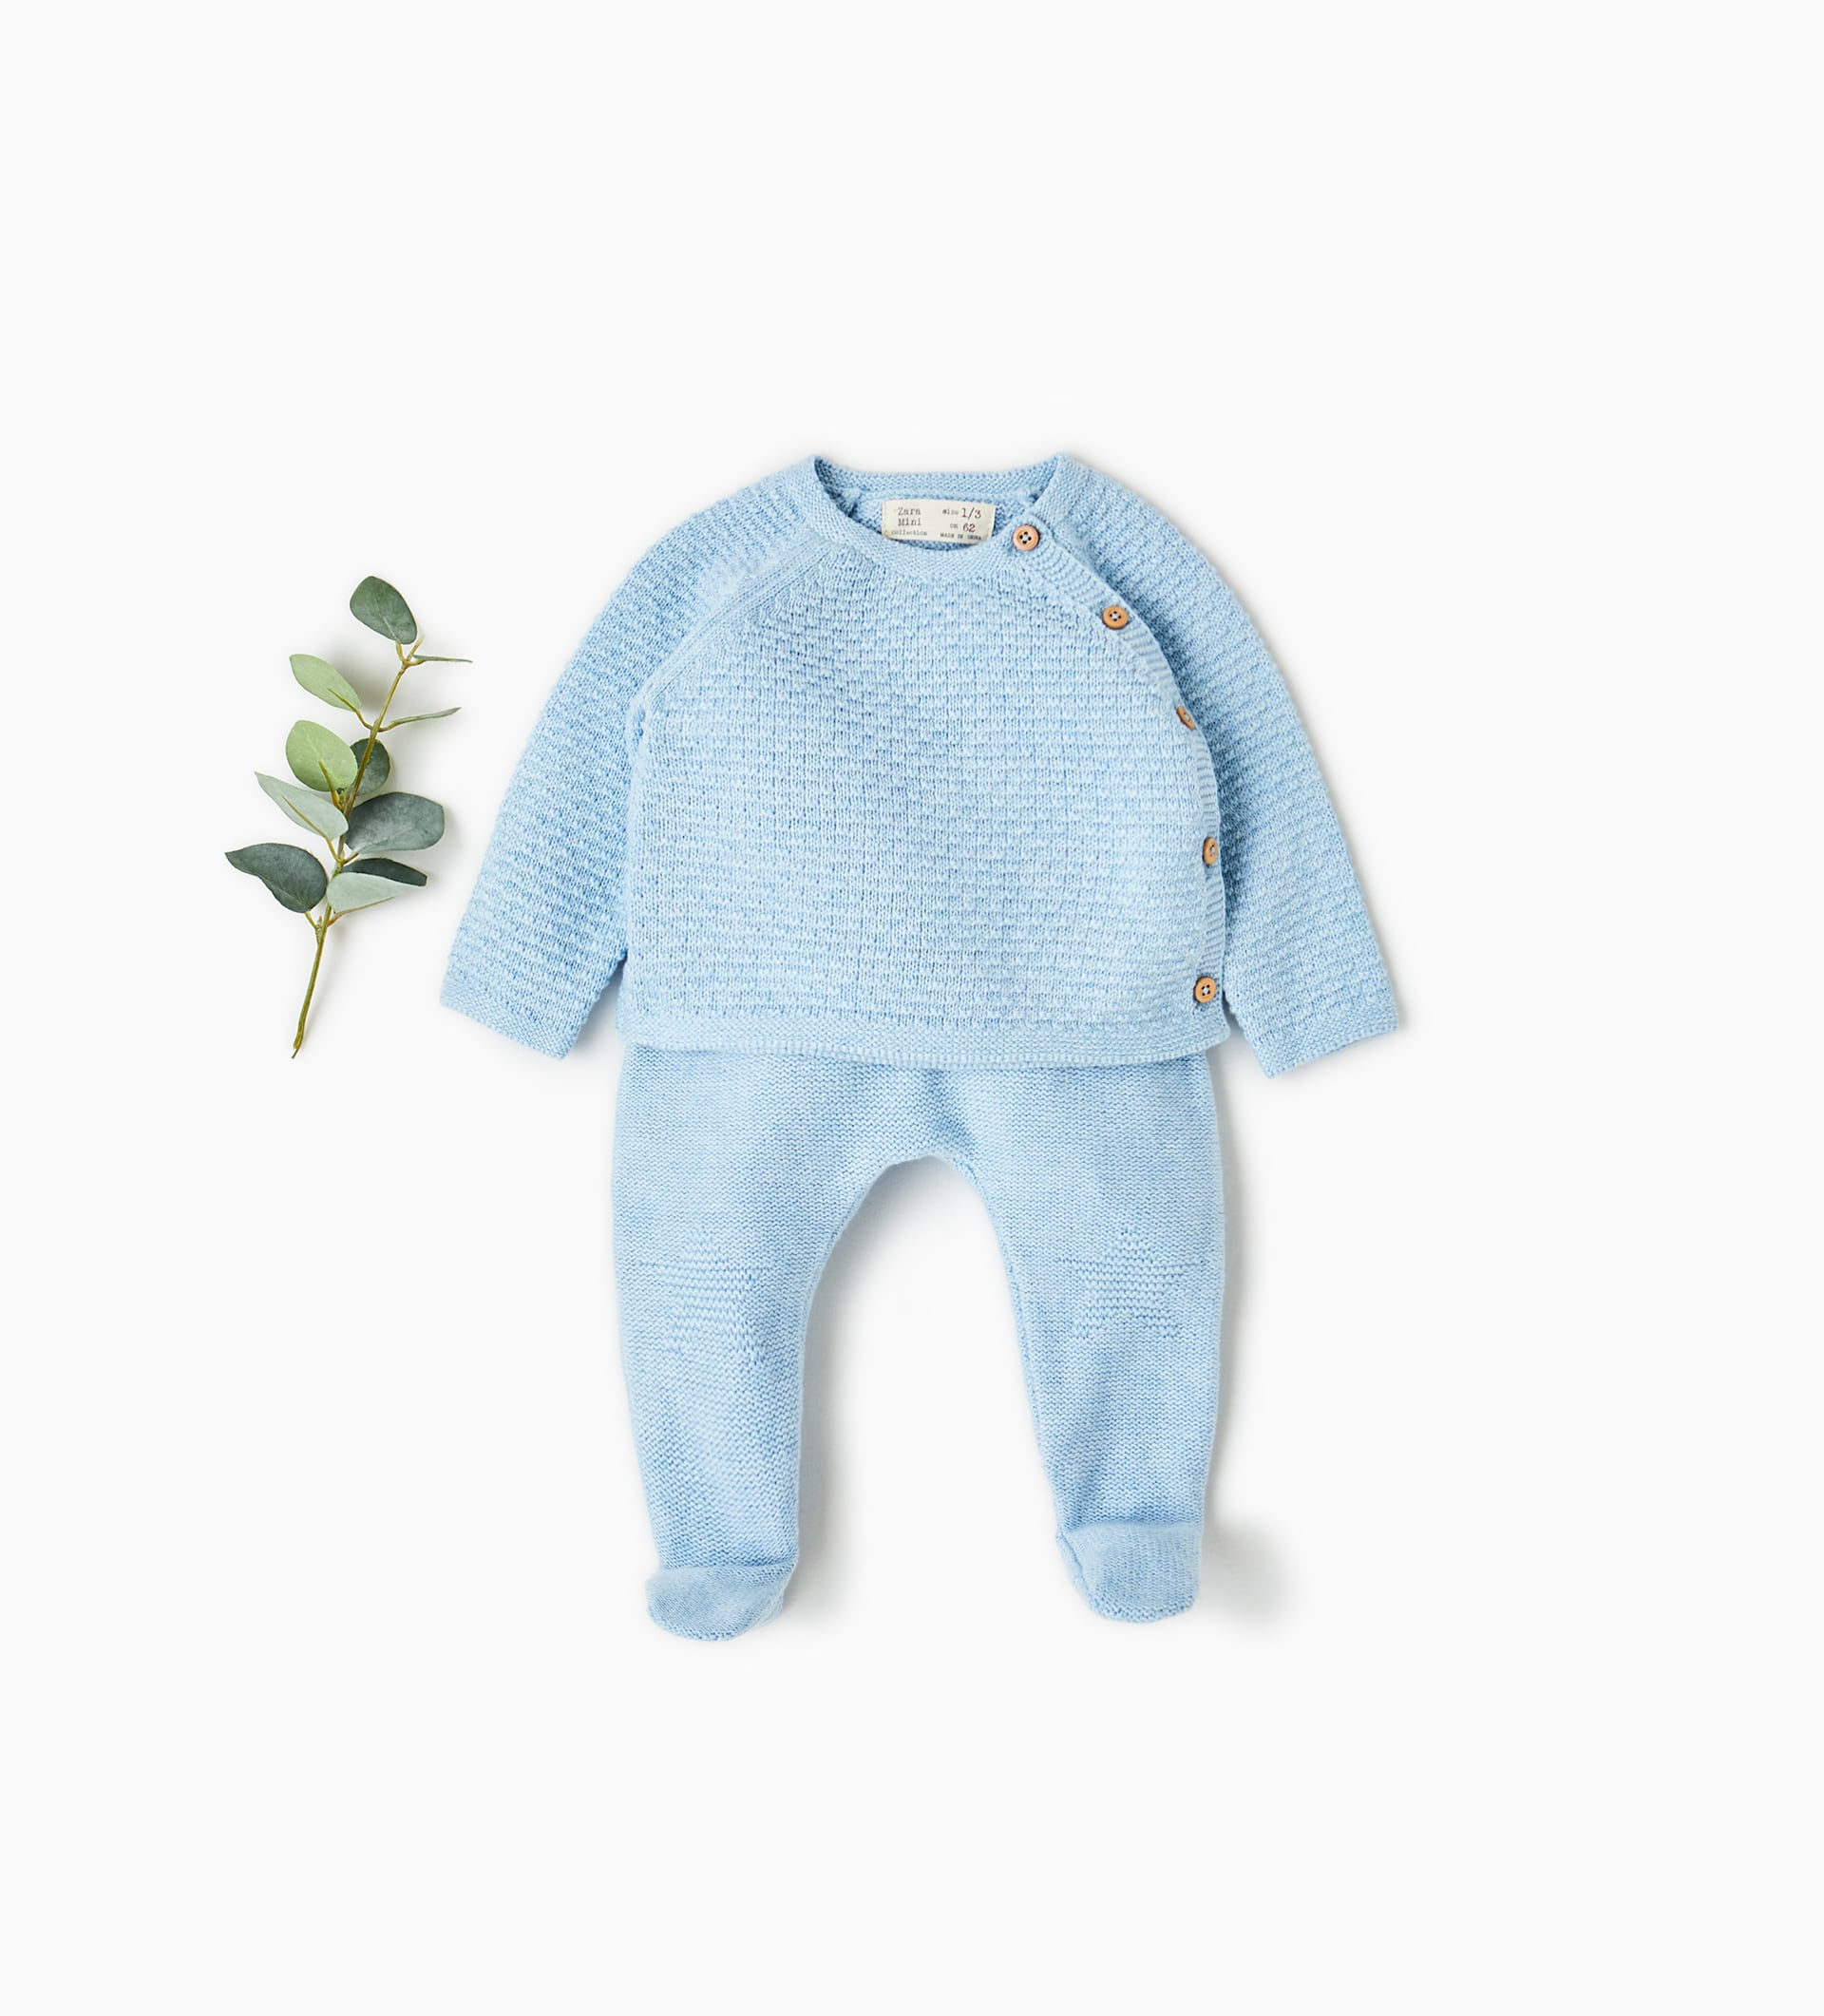 Baby Clothes from Zara SS18 Collection - Blue knit jumpsuit